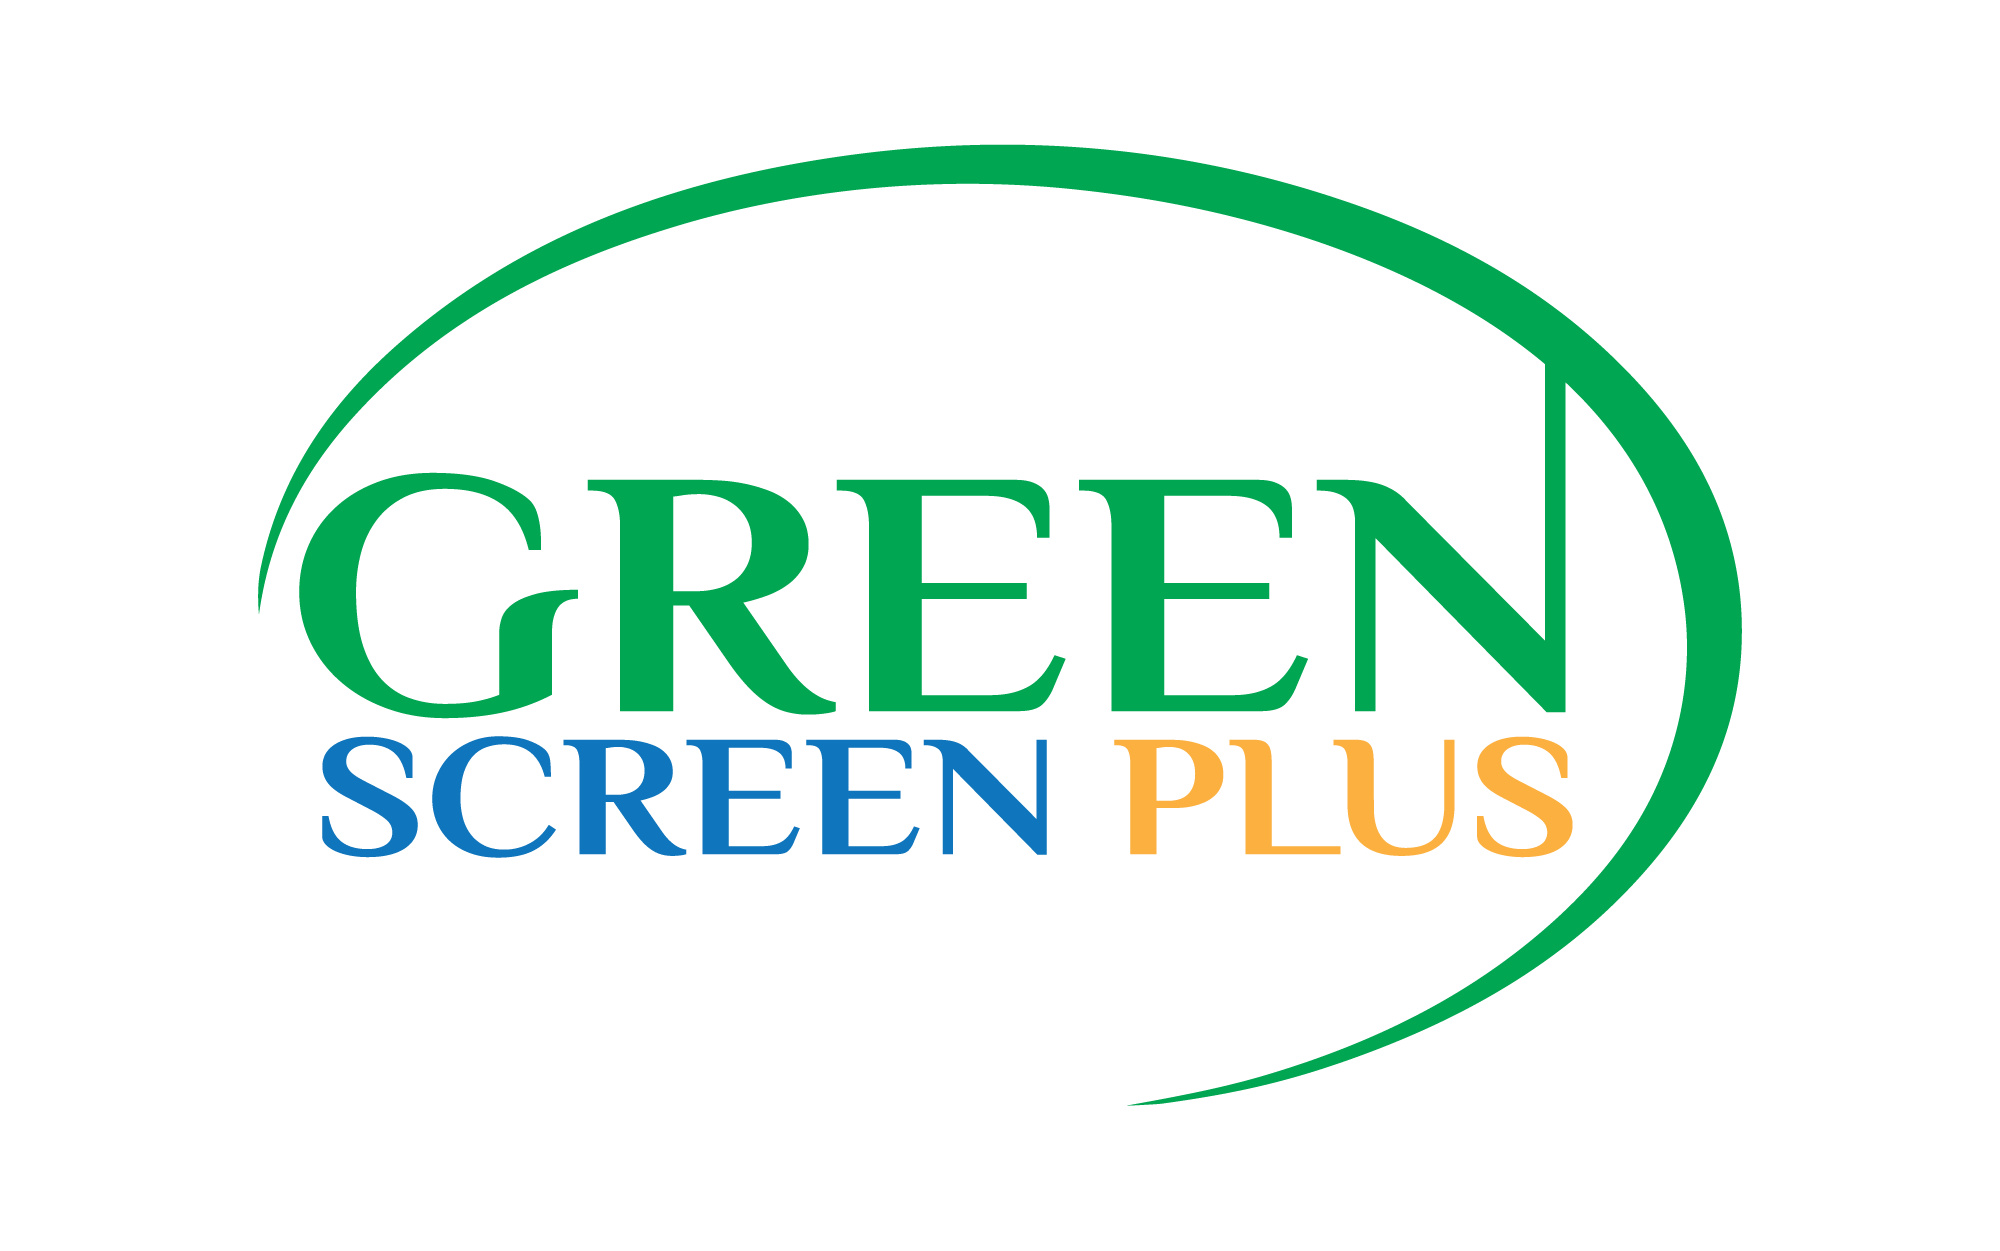 GreenScreenPlus Launches New High-Quality Green Screens For Remote Learning, Home Office, and Homeschooling